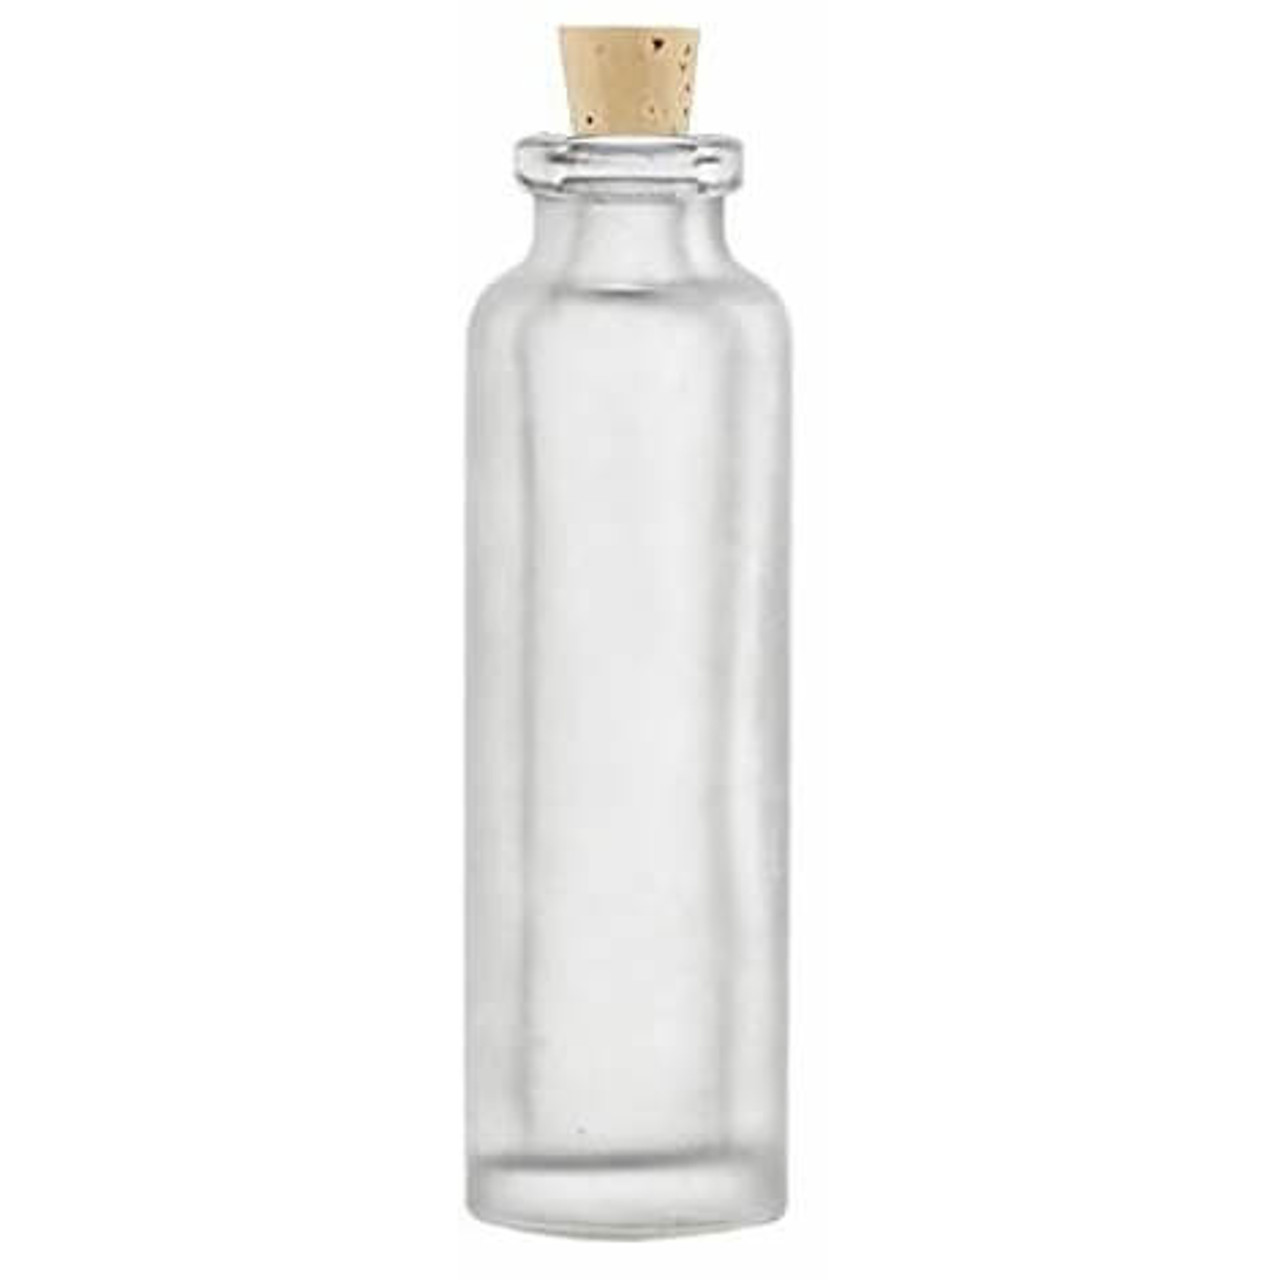 15 ml frosted cylinder vial bottle with cork bottle stopper